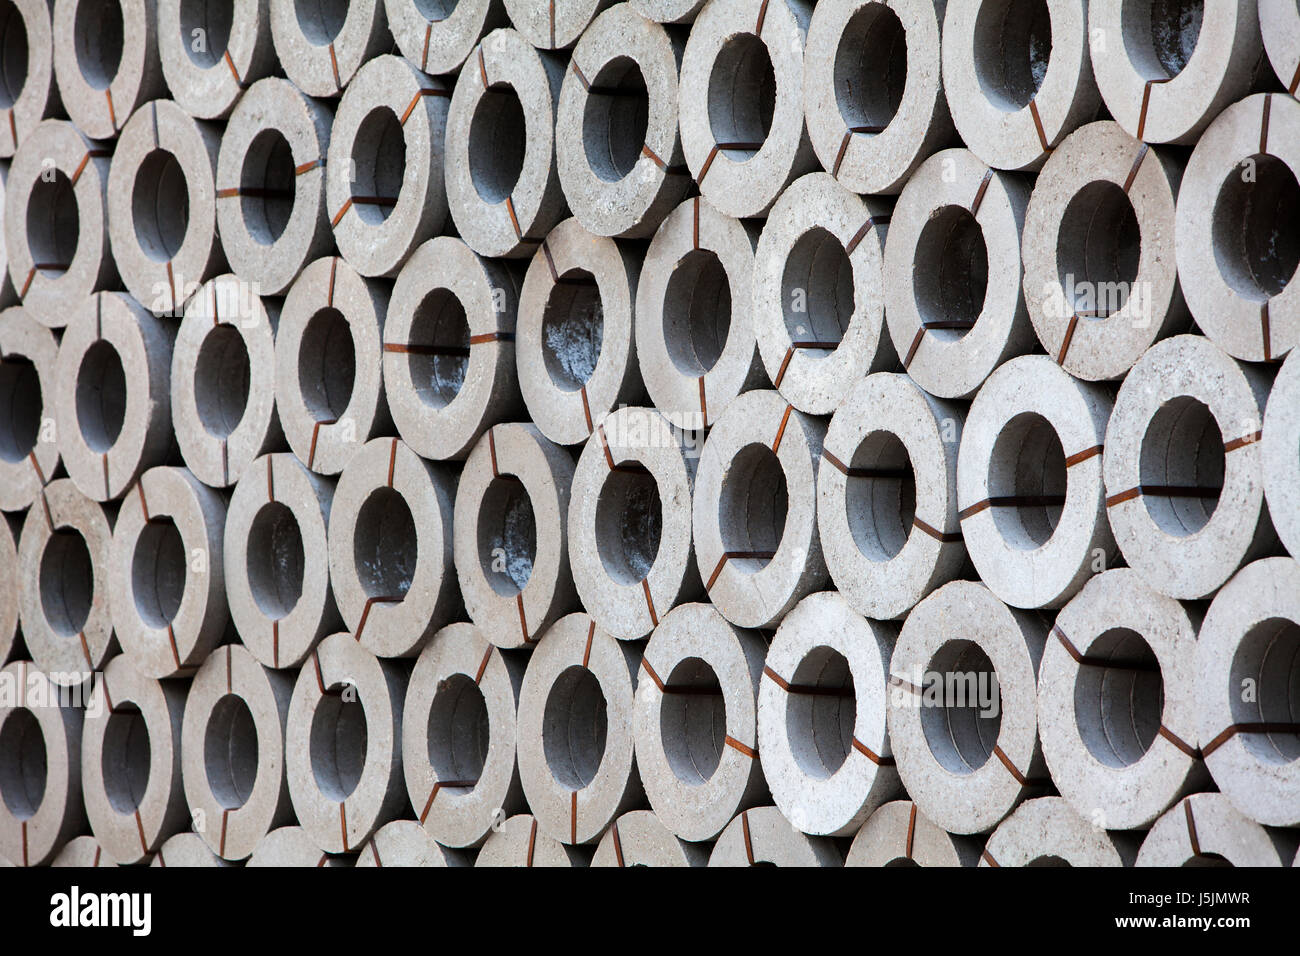 Concrete pipes, Germany - Stock Image